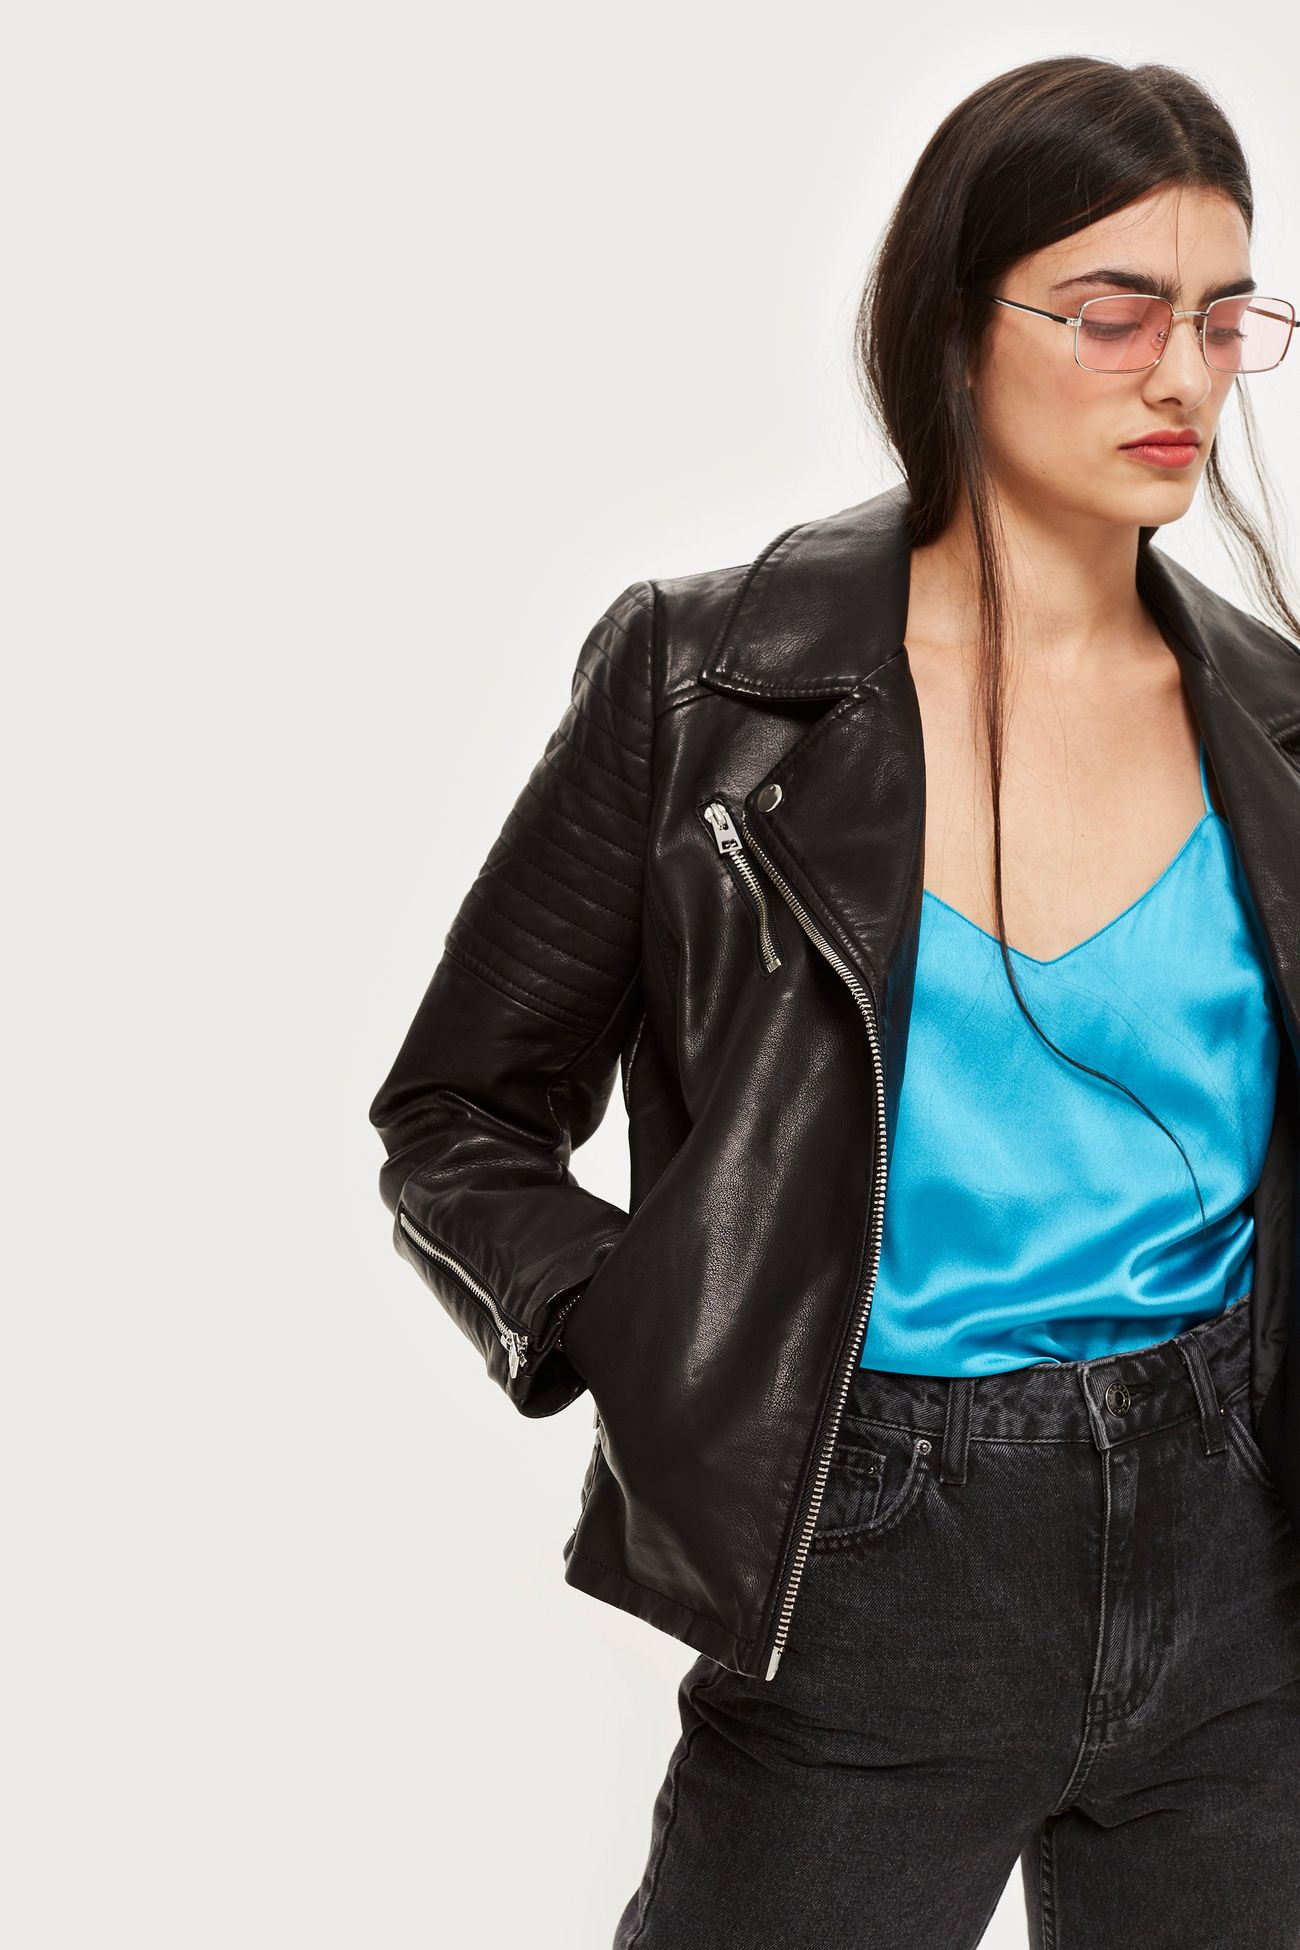 d224e72b0f5 A leather jacket is a wardrobe staple that every woman needs to invest in.  This jacket can add a cool edge to any outfit or it can be paired ...